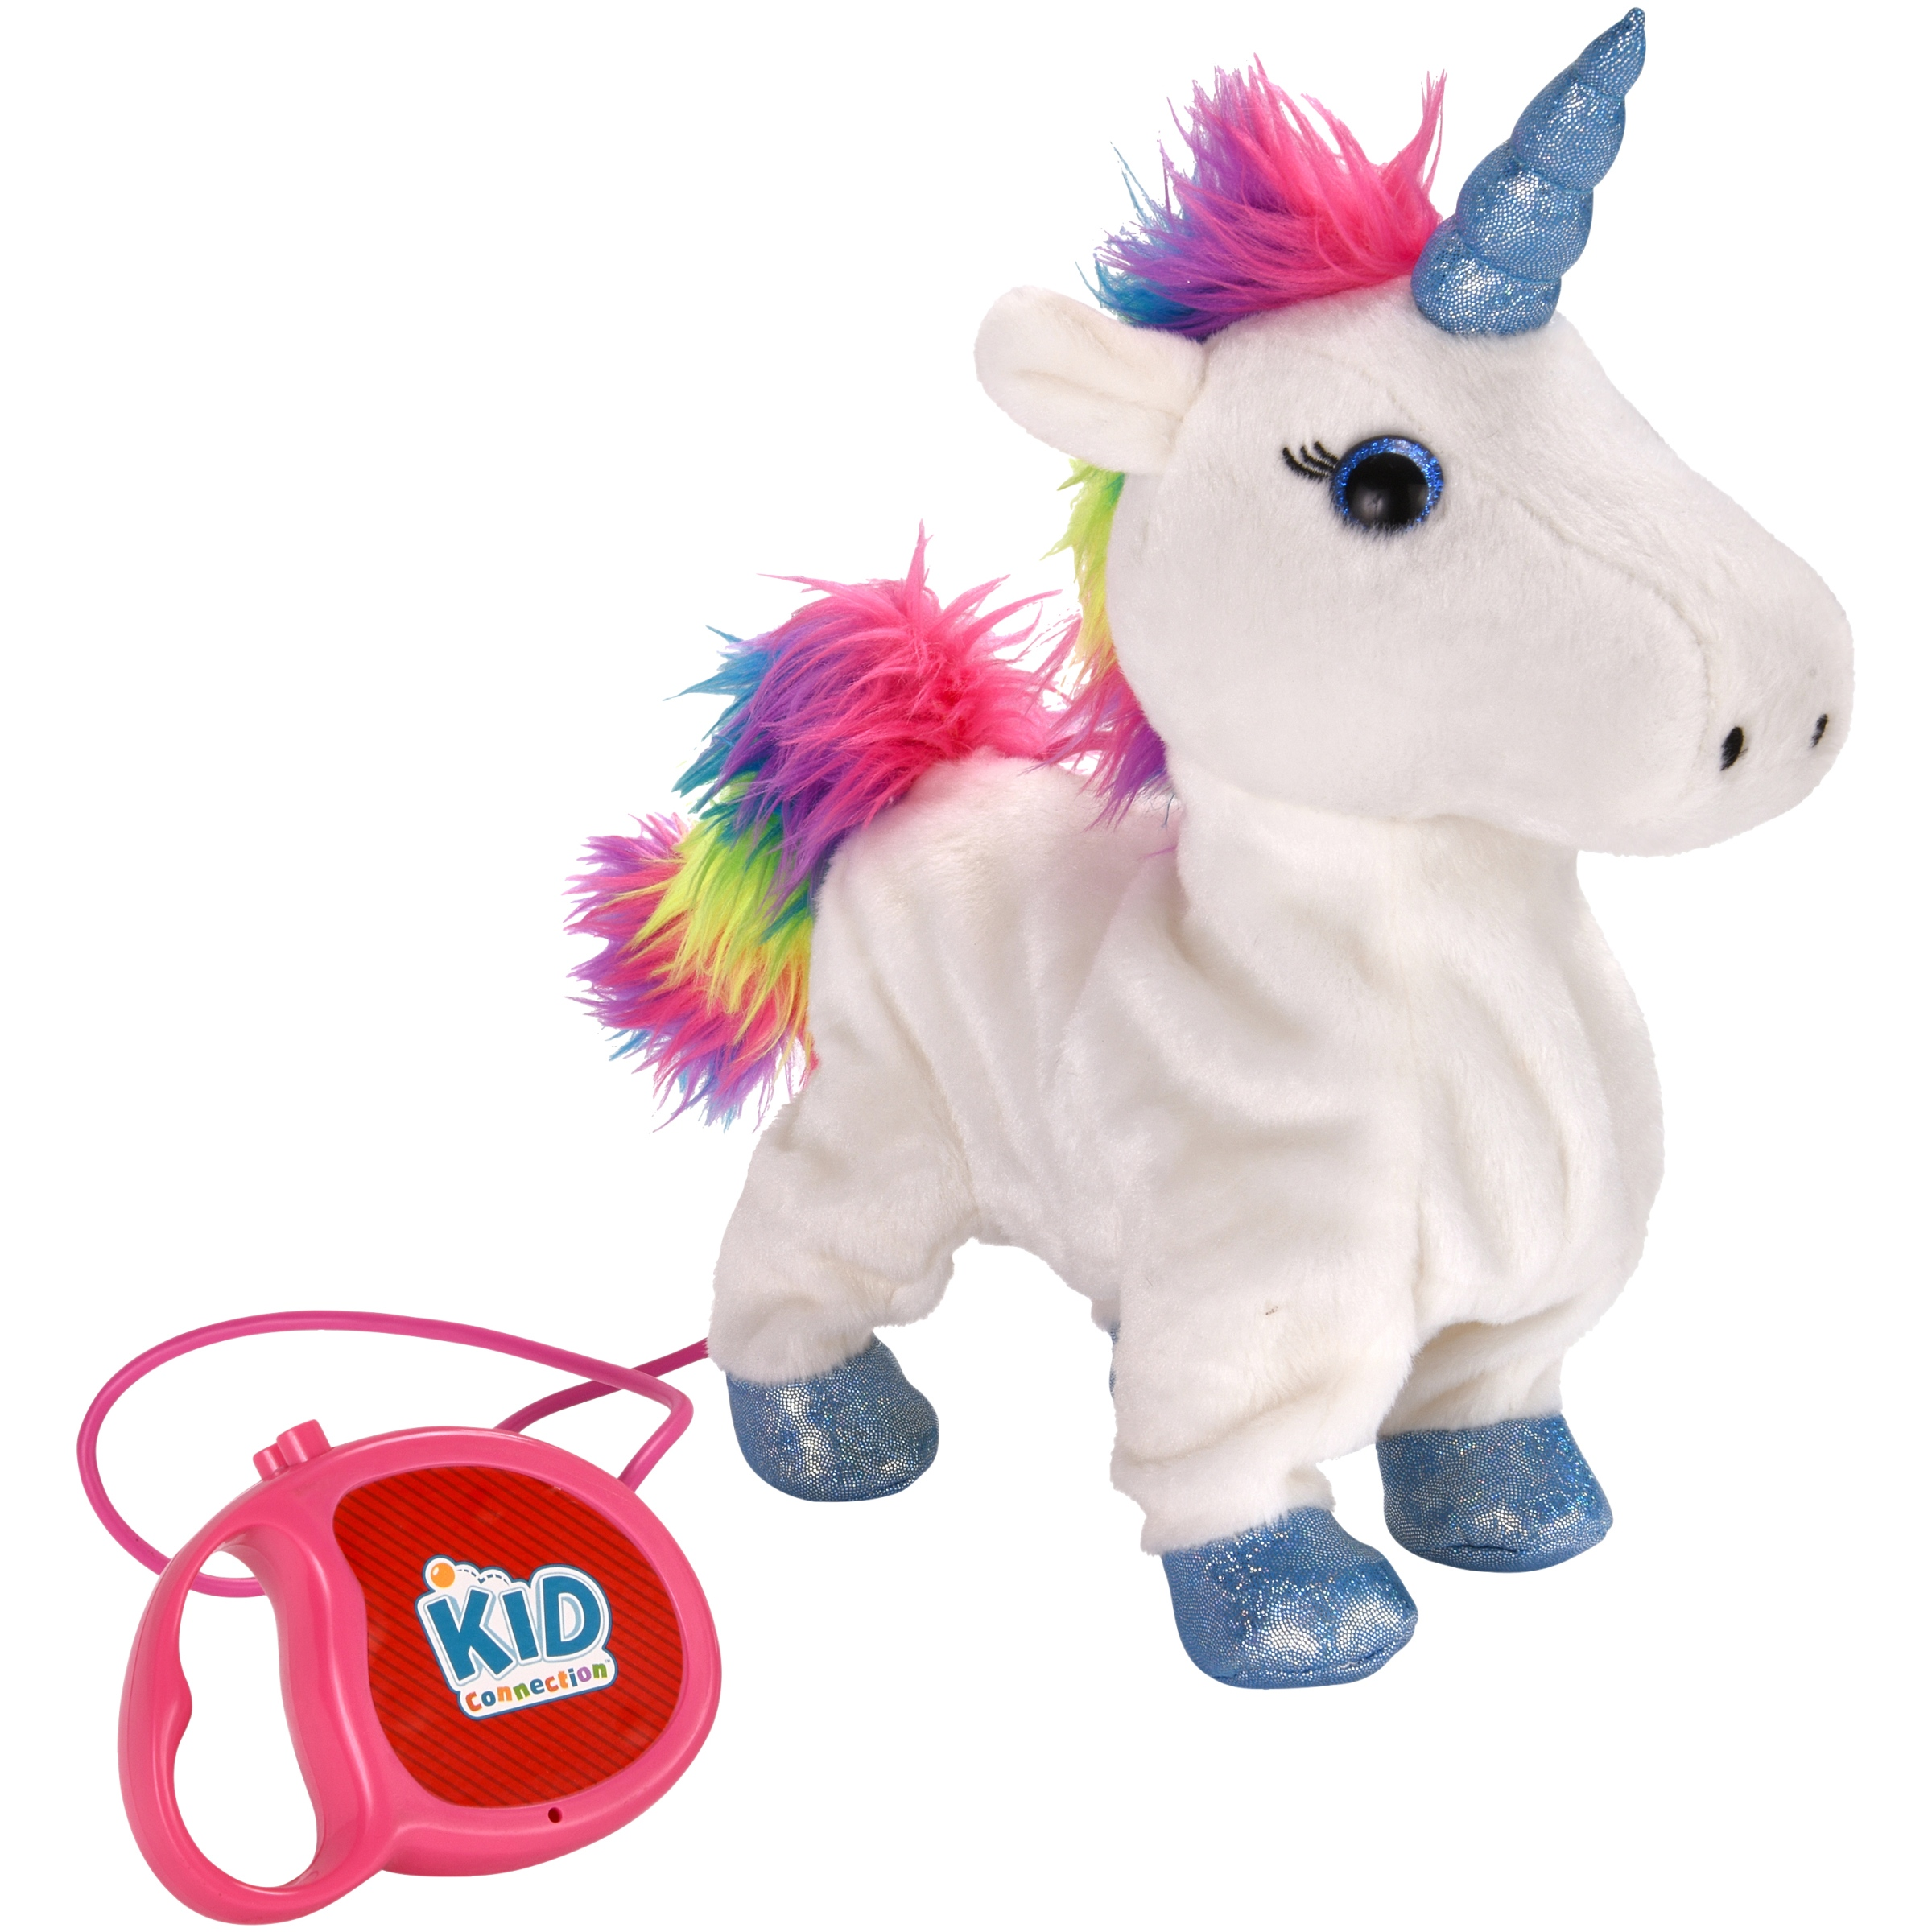 "Kid Connection 9"" Plush Walking Unicorn, White & Rainbow"